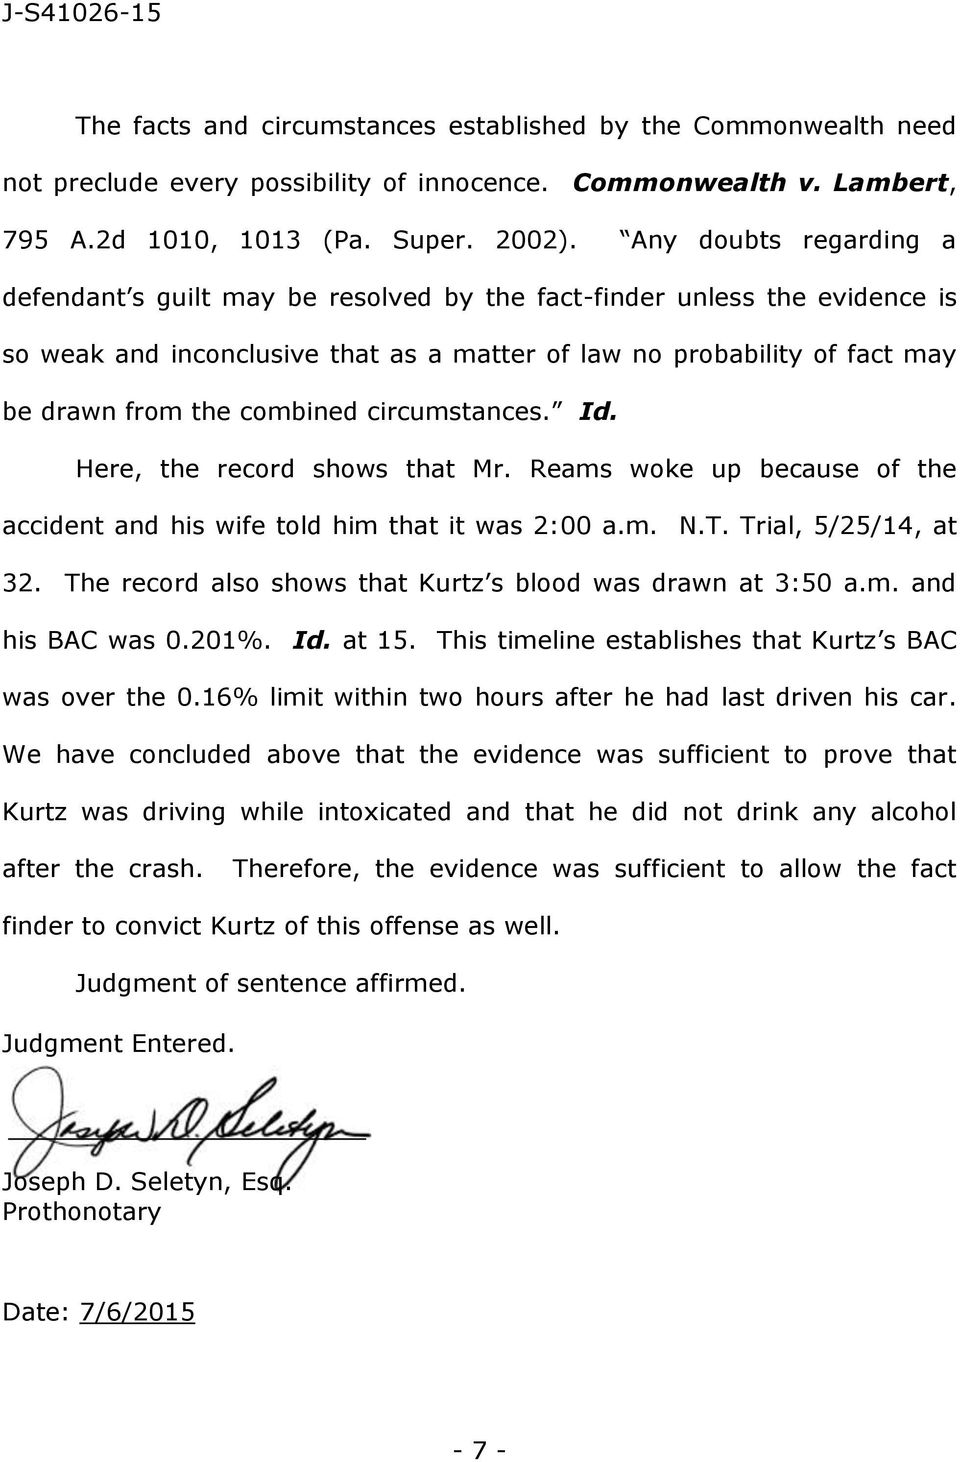 combined circumstances. Id. Here, the record shows that Mr. Reams woke up because of the accident and his wife told him that it was 2:00 a.m. N.T. Trial, 5/25/14, at 32.